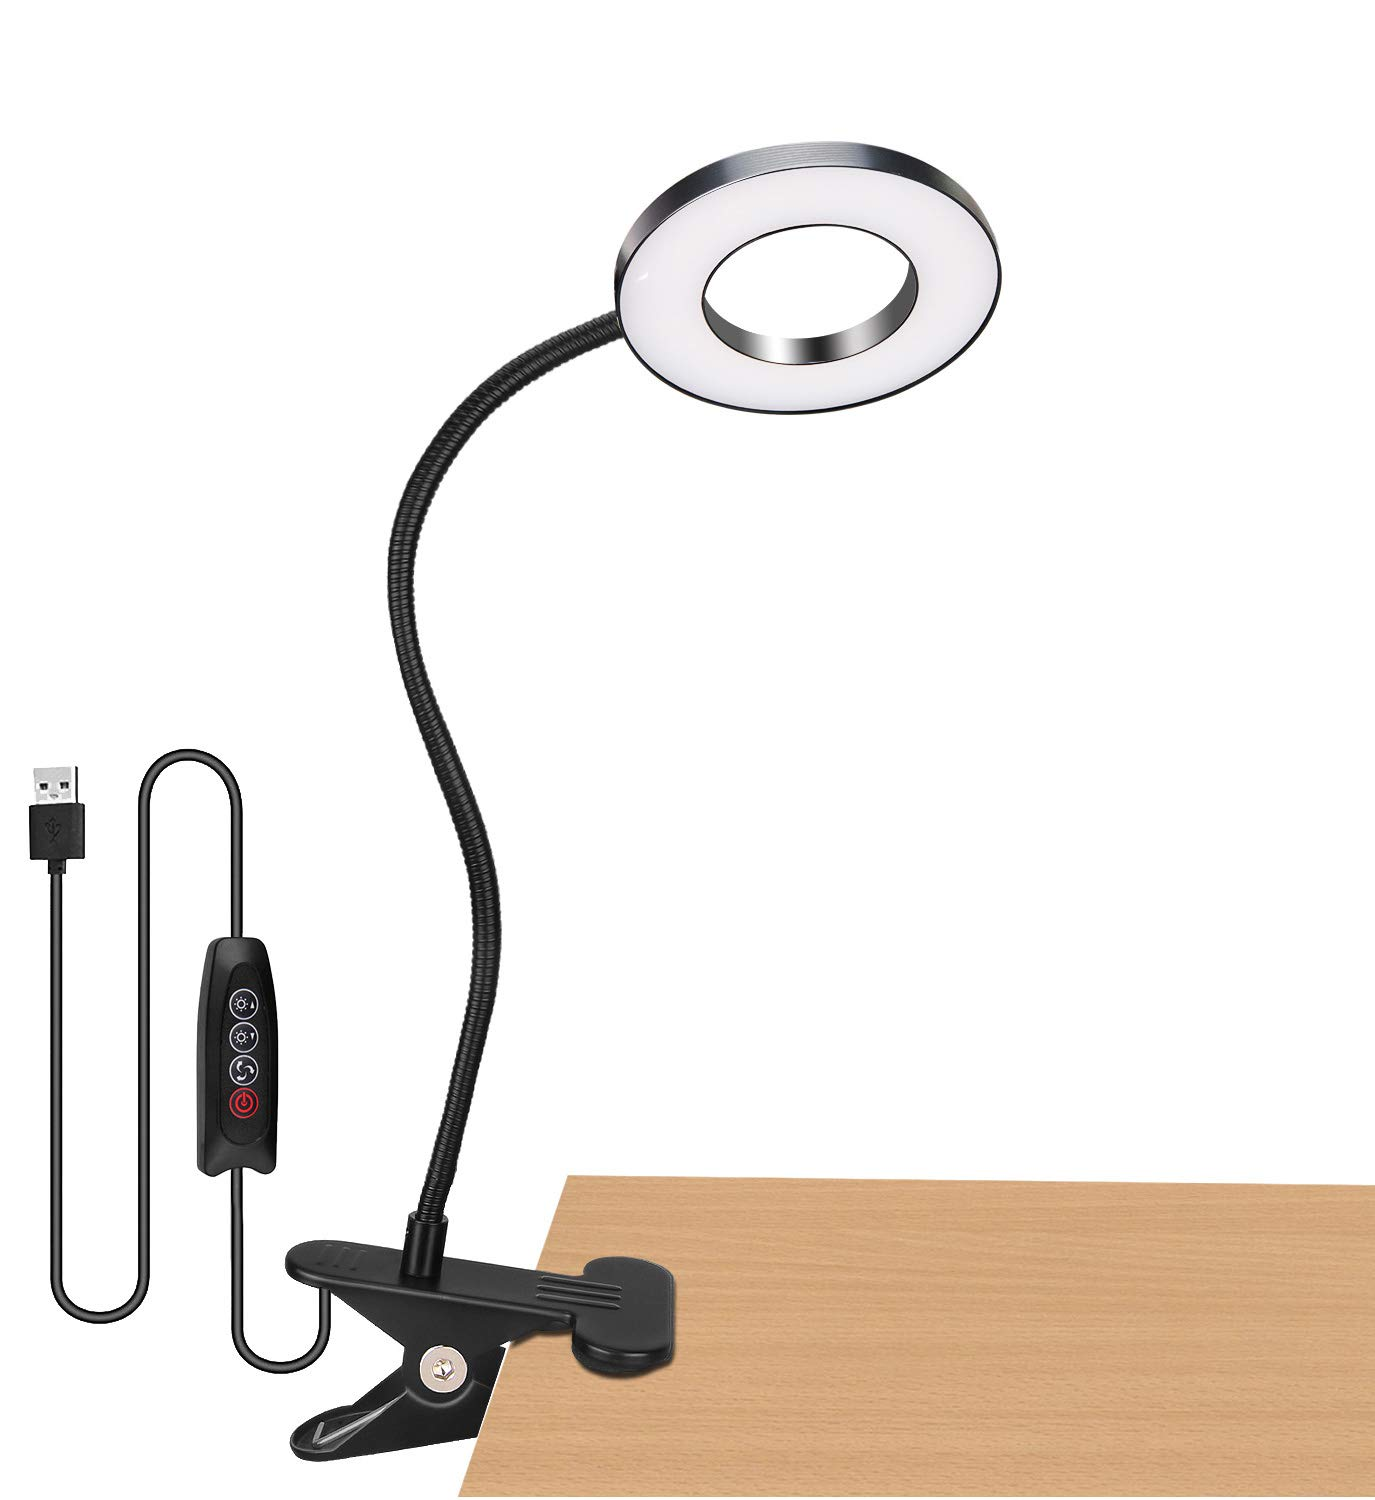 Book Reading Light in Bed - Clip on Lamp with 3 Brightness, Great for Bedside, Makeup Mirror, Headboard, Office, Desk, Dorm Room, Piano, Laptop and Daily Use (Black)